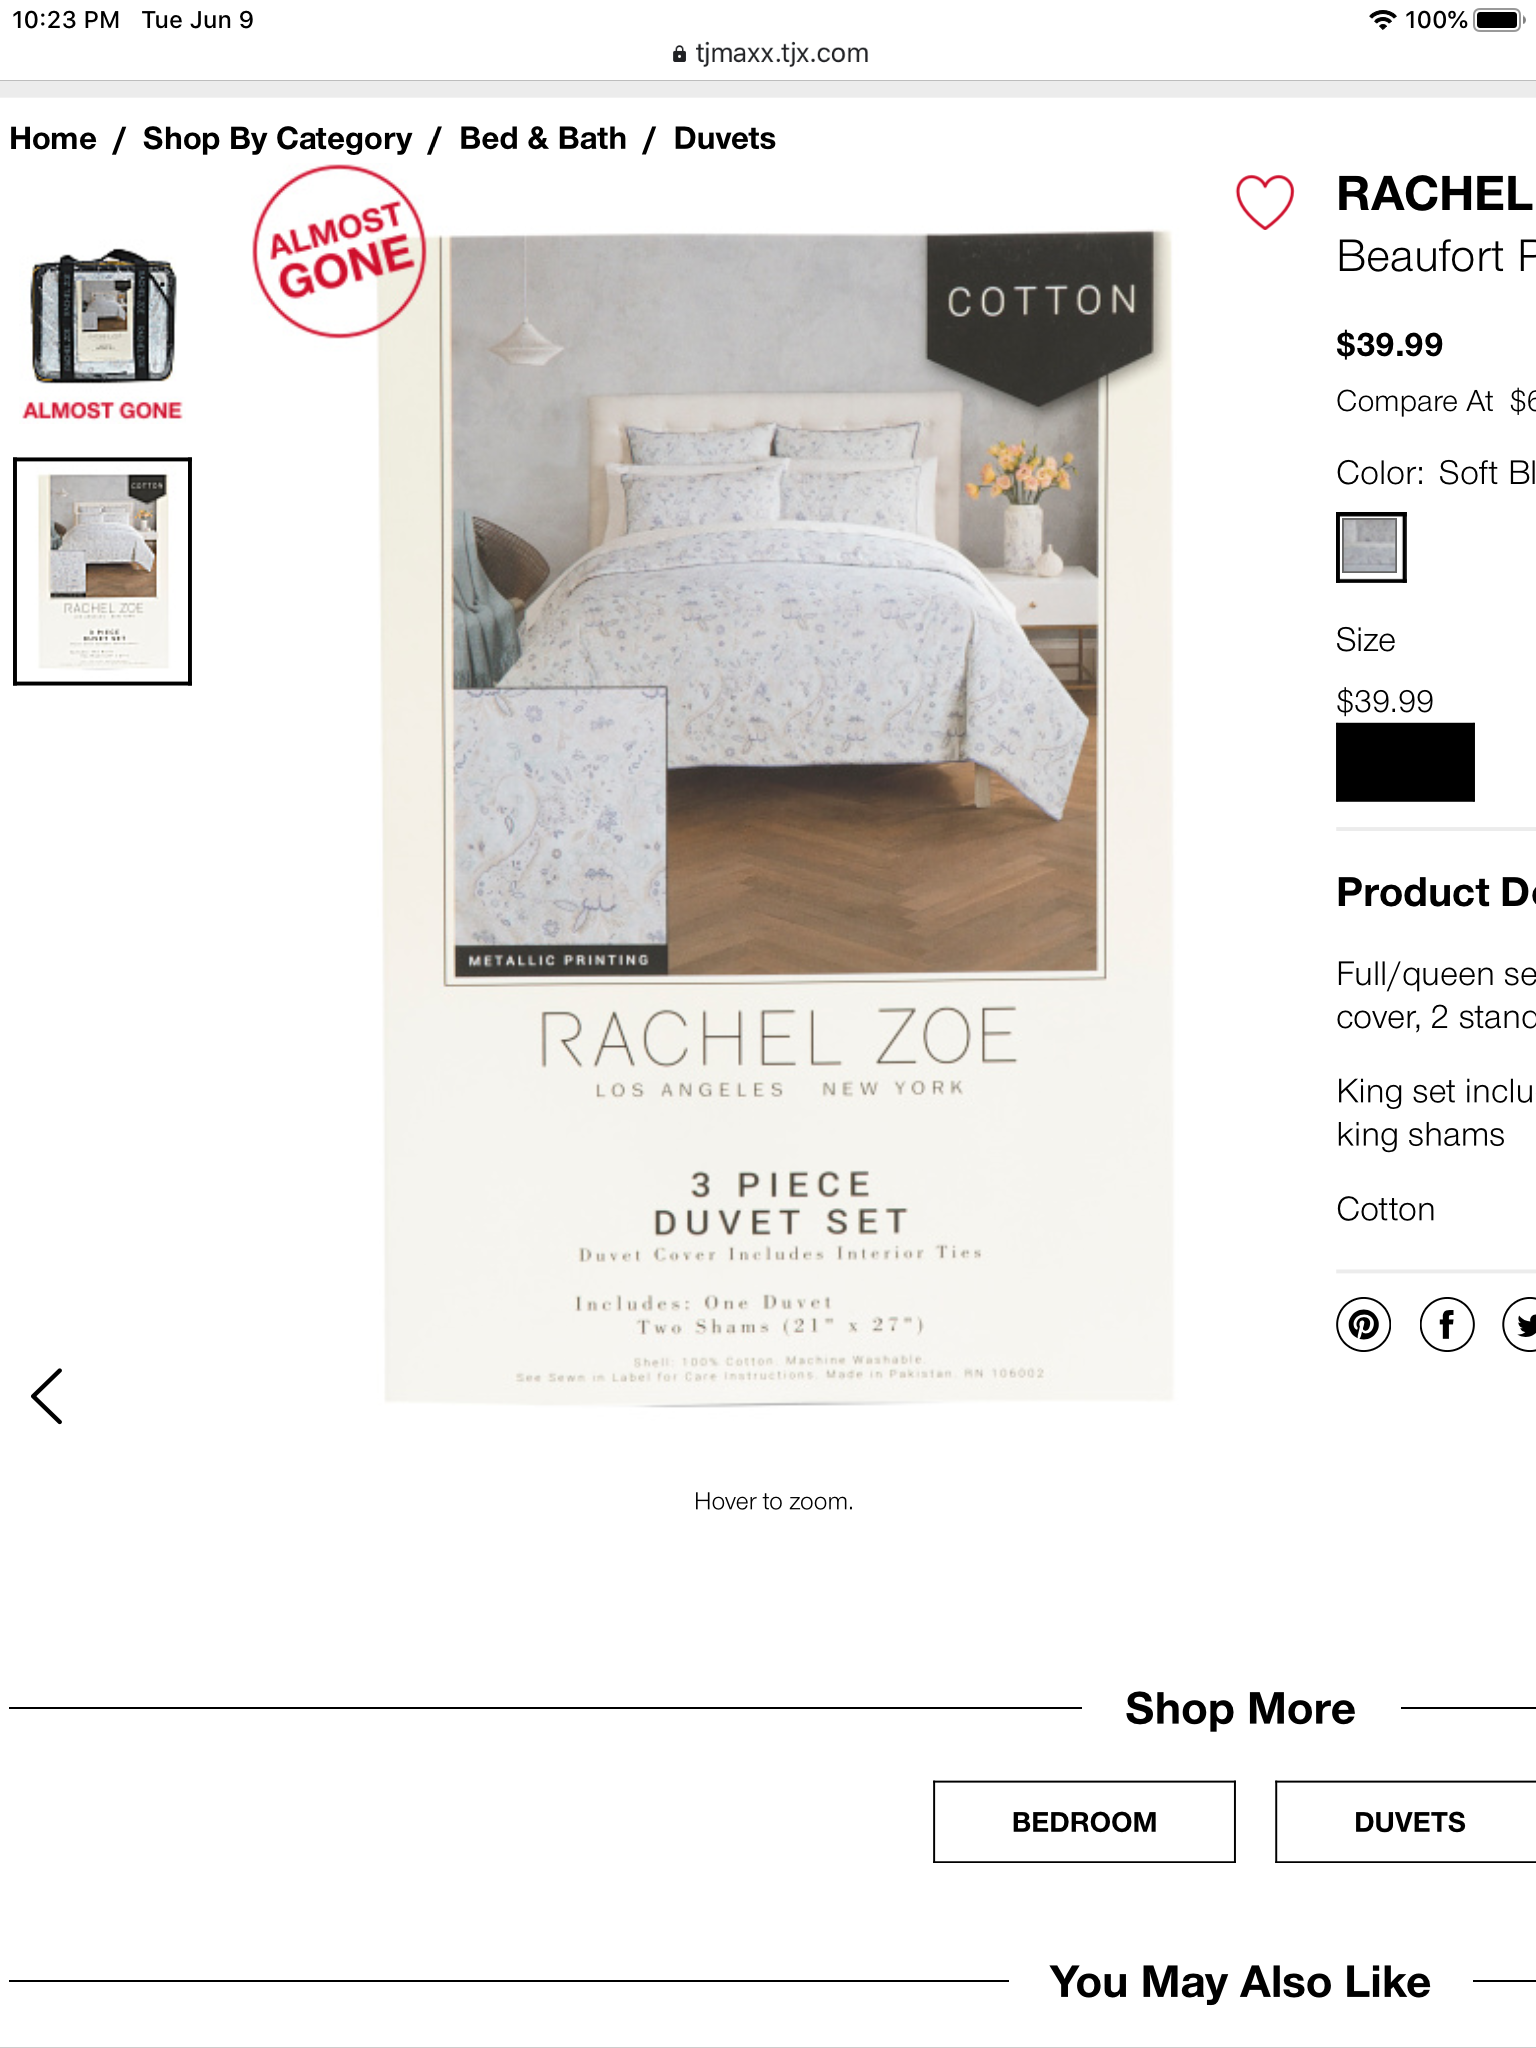 Pin By Kelzworld On Launch Mood Board In 2020 Go Compare Bed Duvet